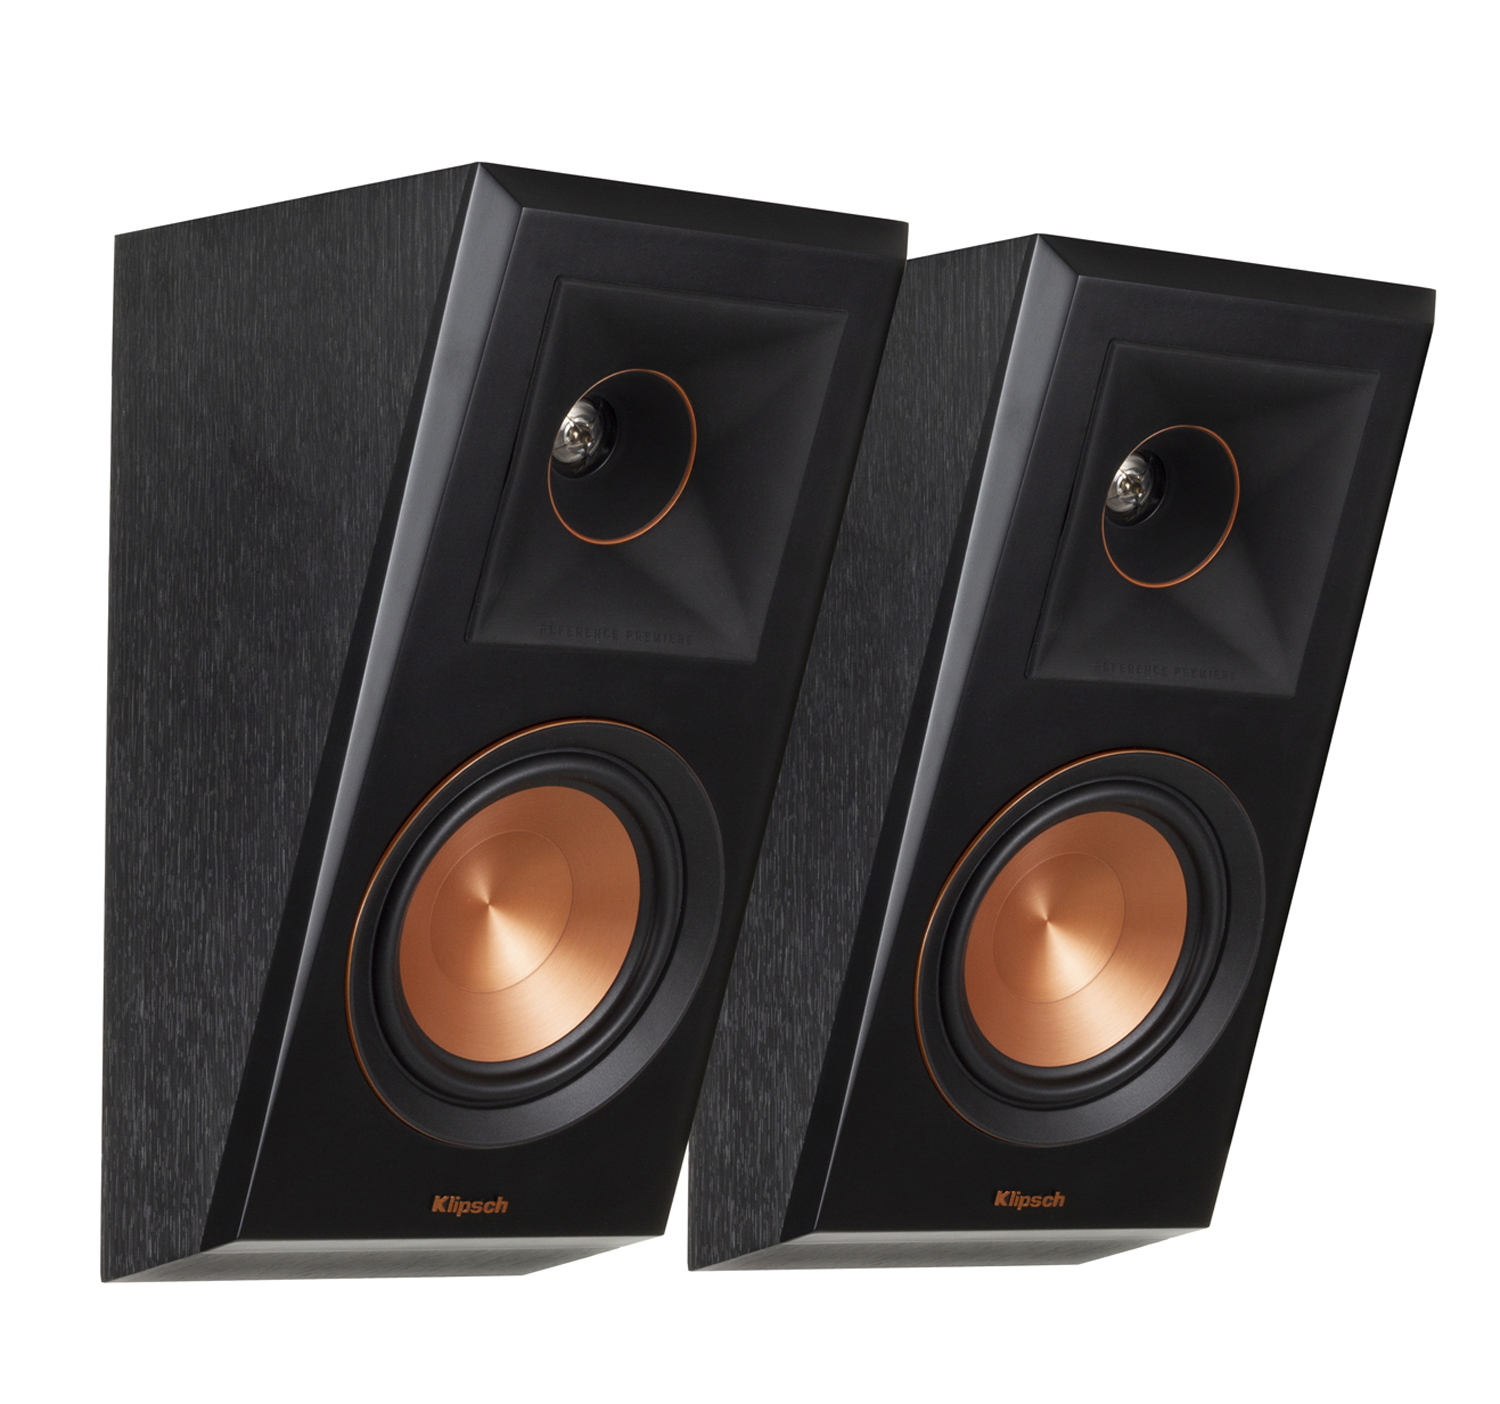 Klipsch Ebony Dolby Atmos Speaker 1066507 Sold As Pair